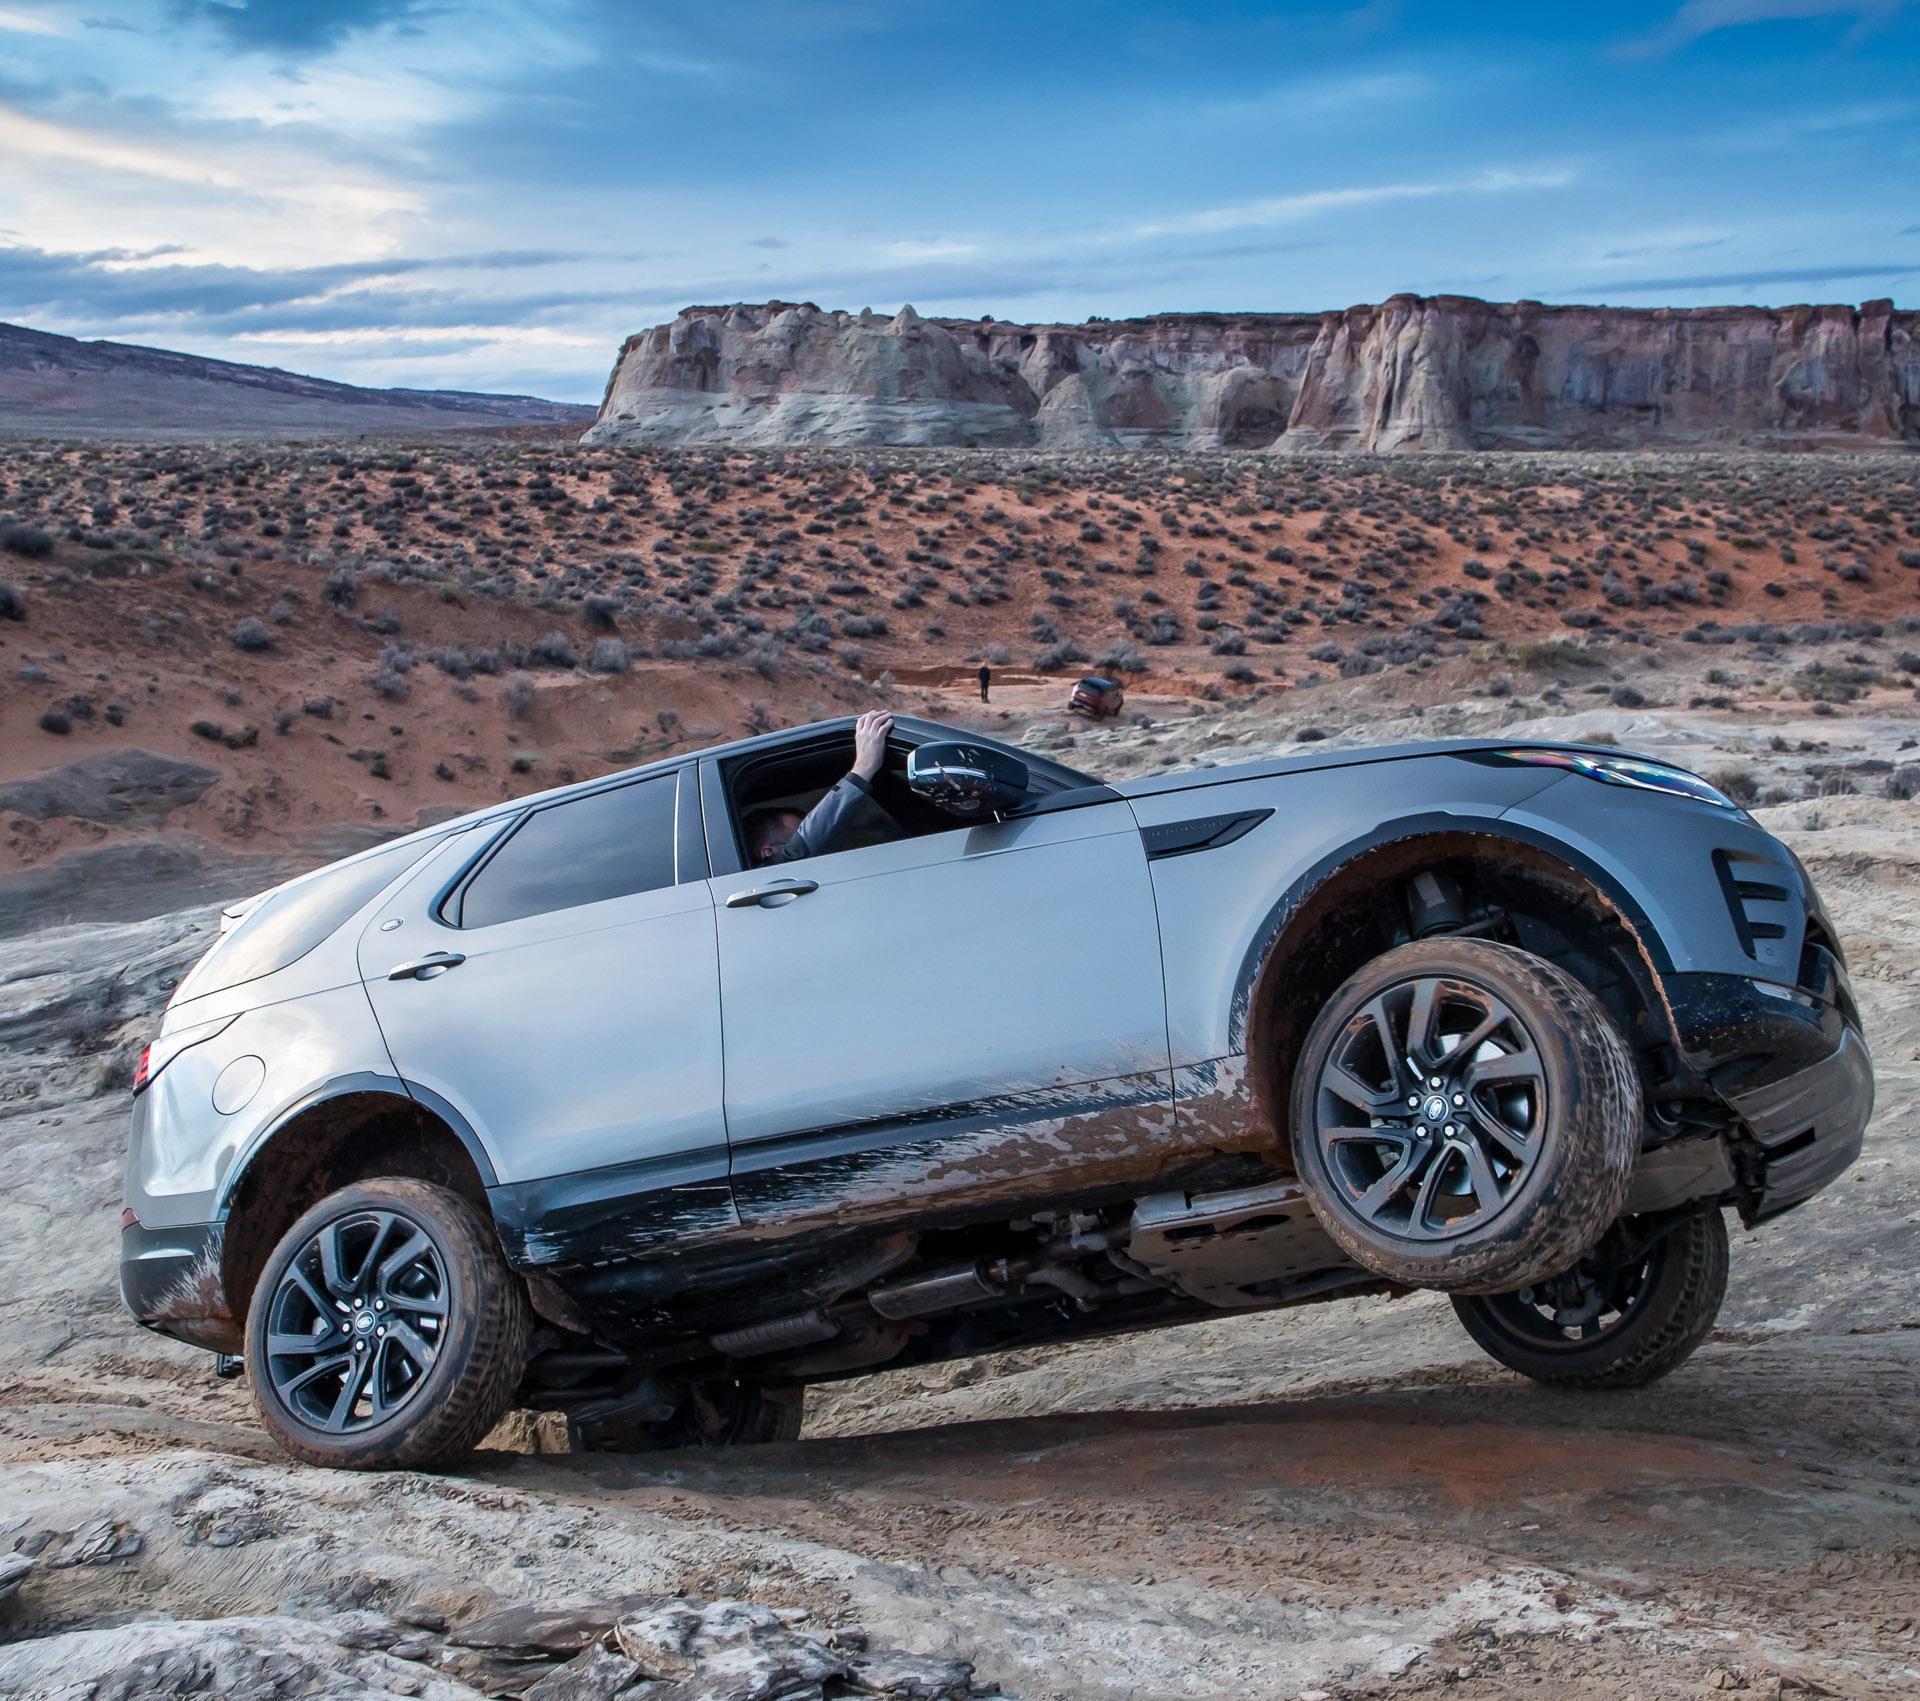 Land Rover: 2017 Land Rover Discovery: The New King Of The SUV Hill